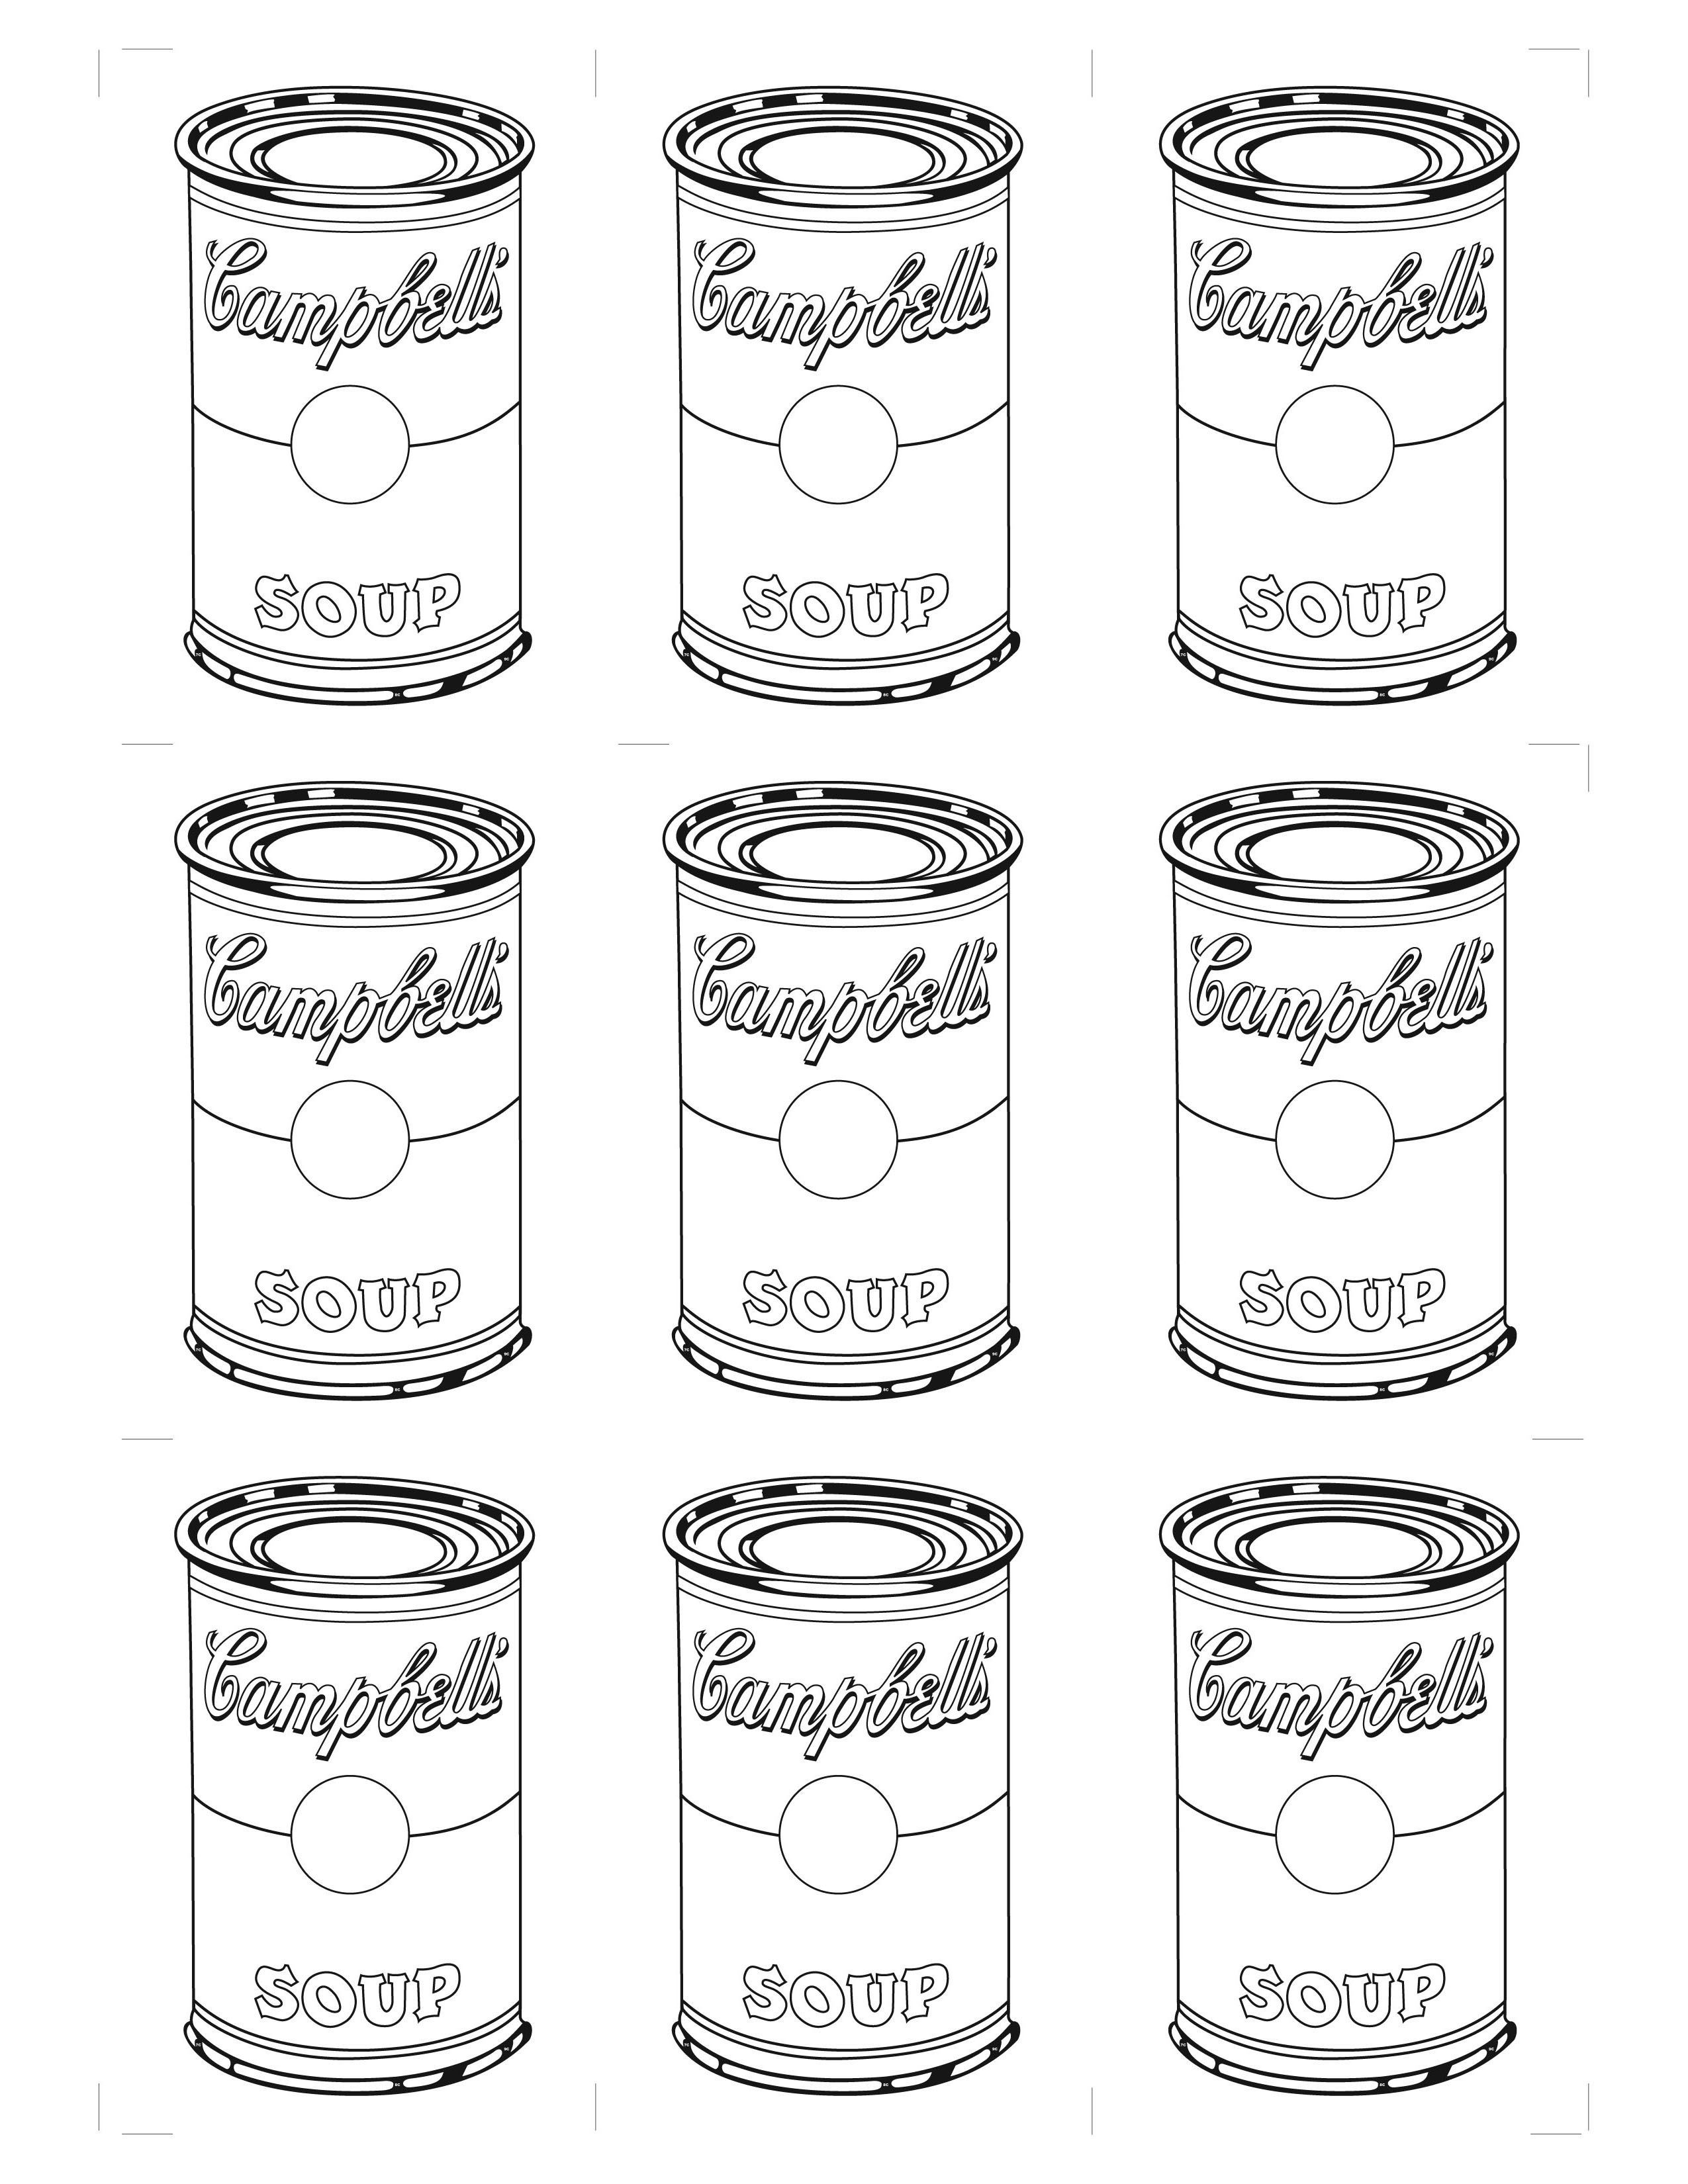 Download or print this amazing coloring page: Andy Warhol